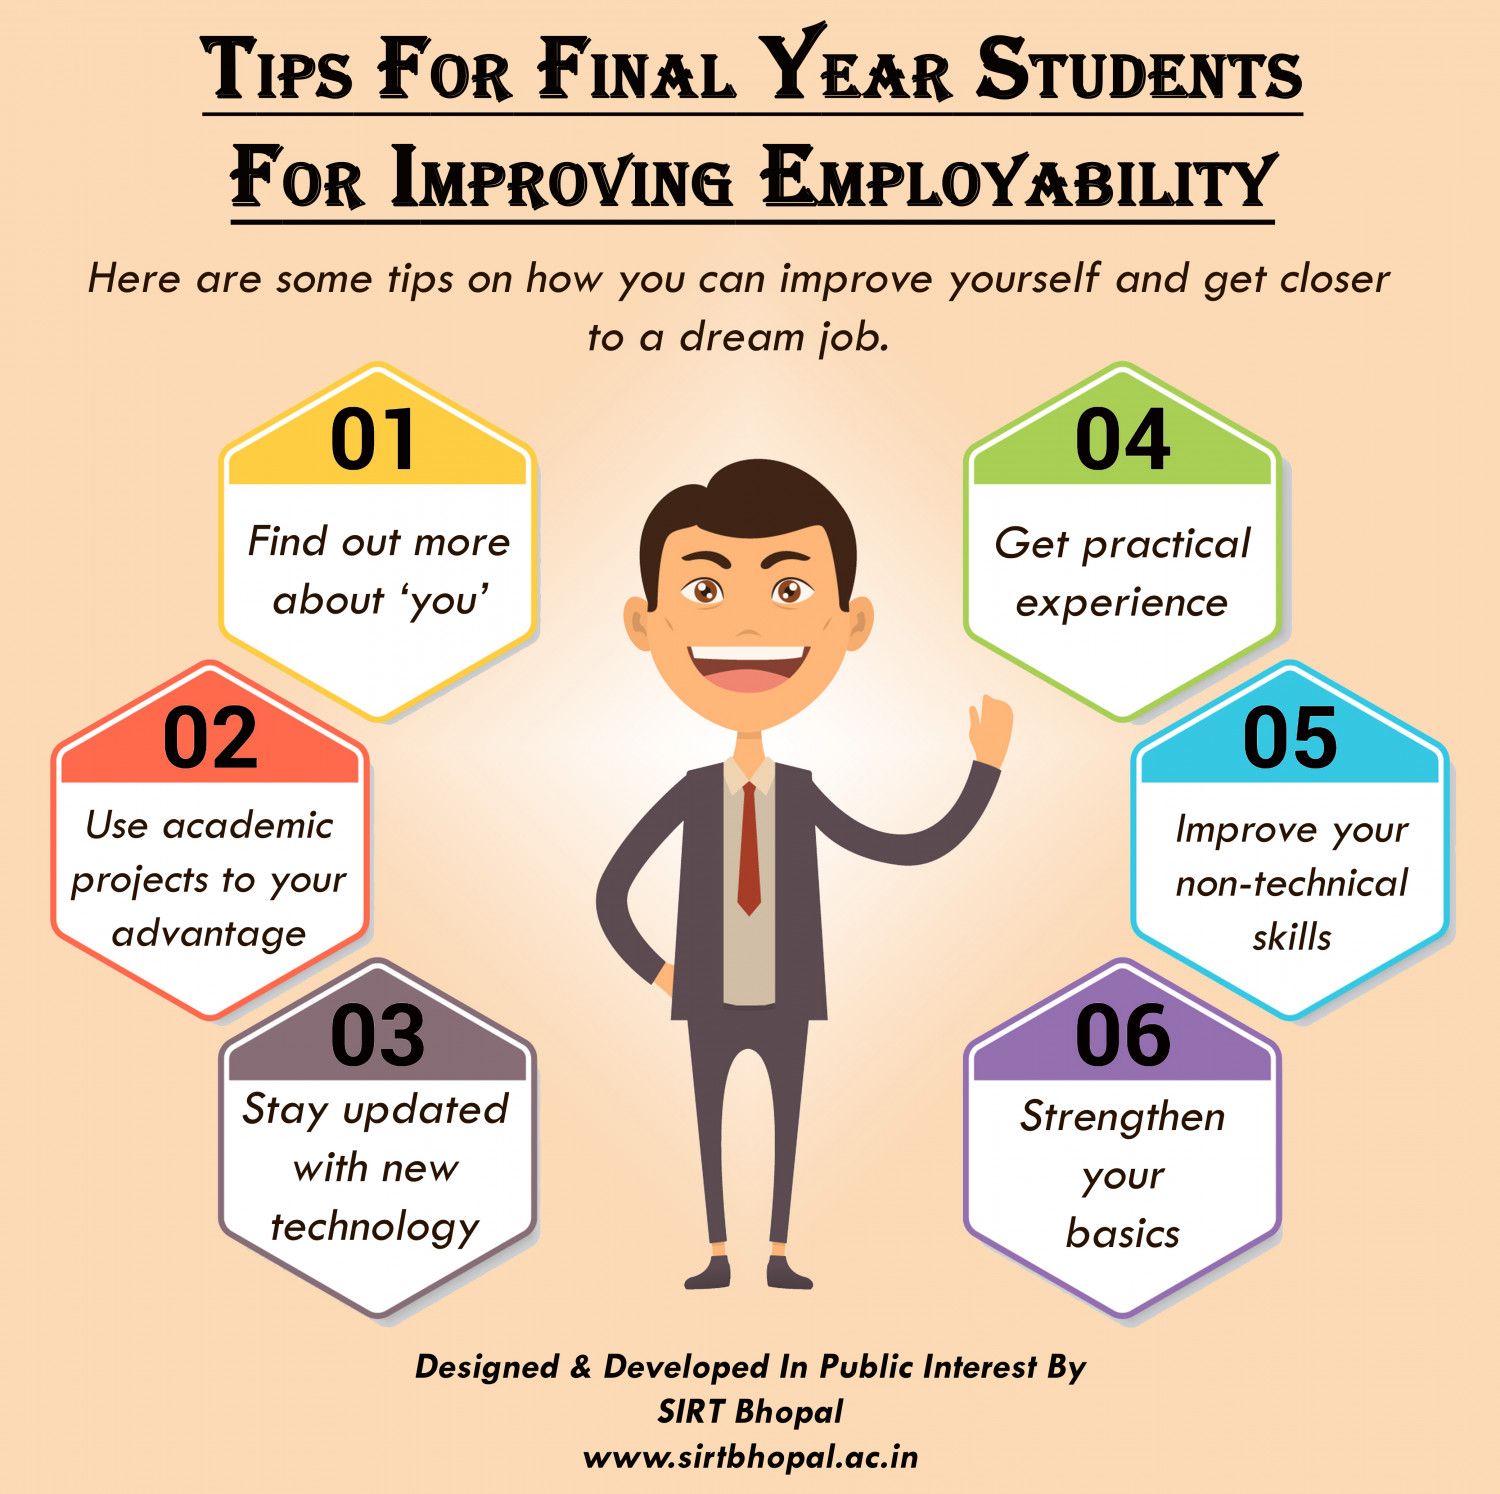 Tips For Final Year Students For Improving Employability Infographic